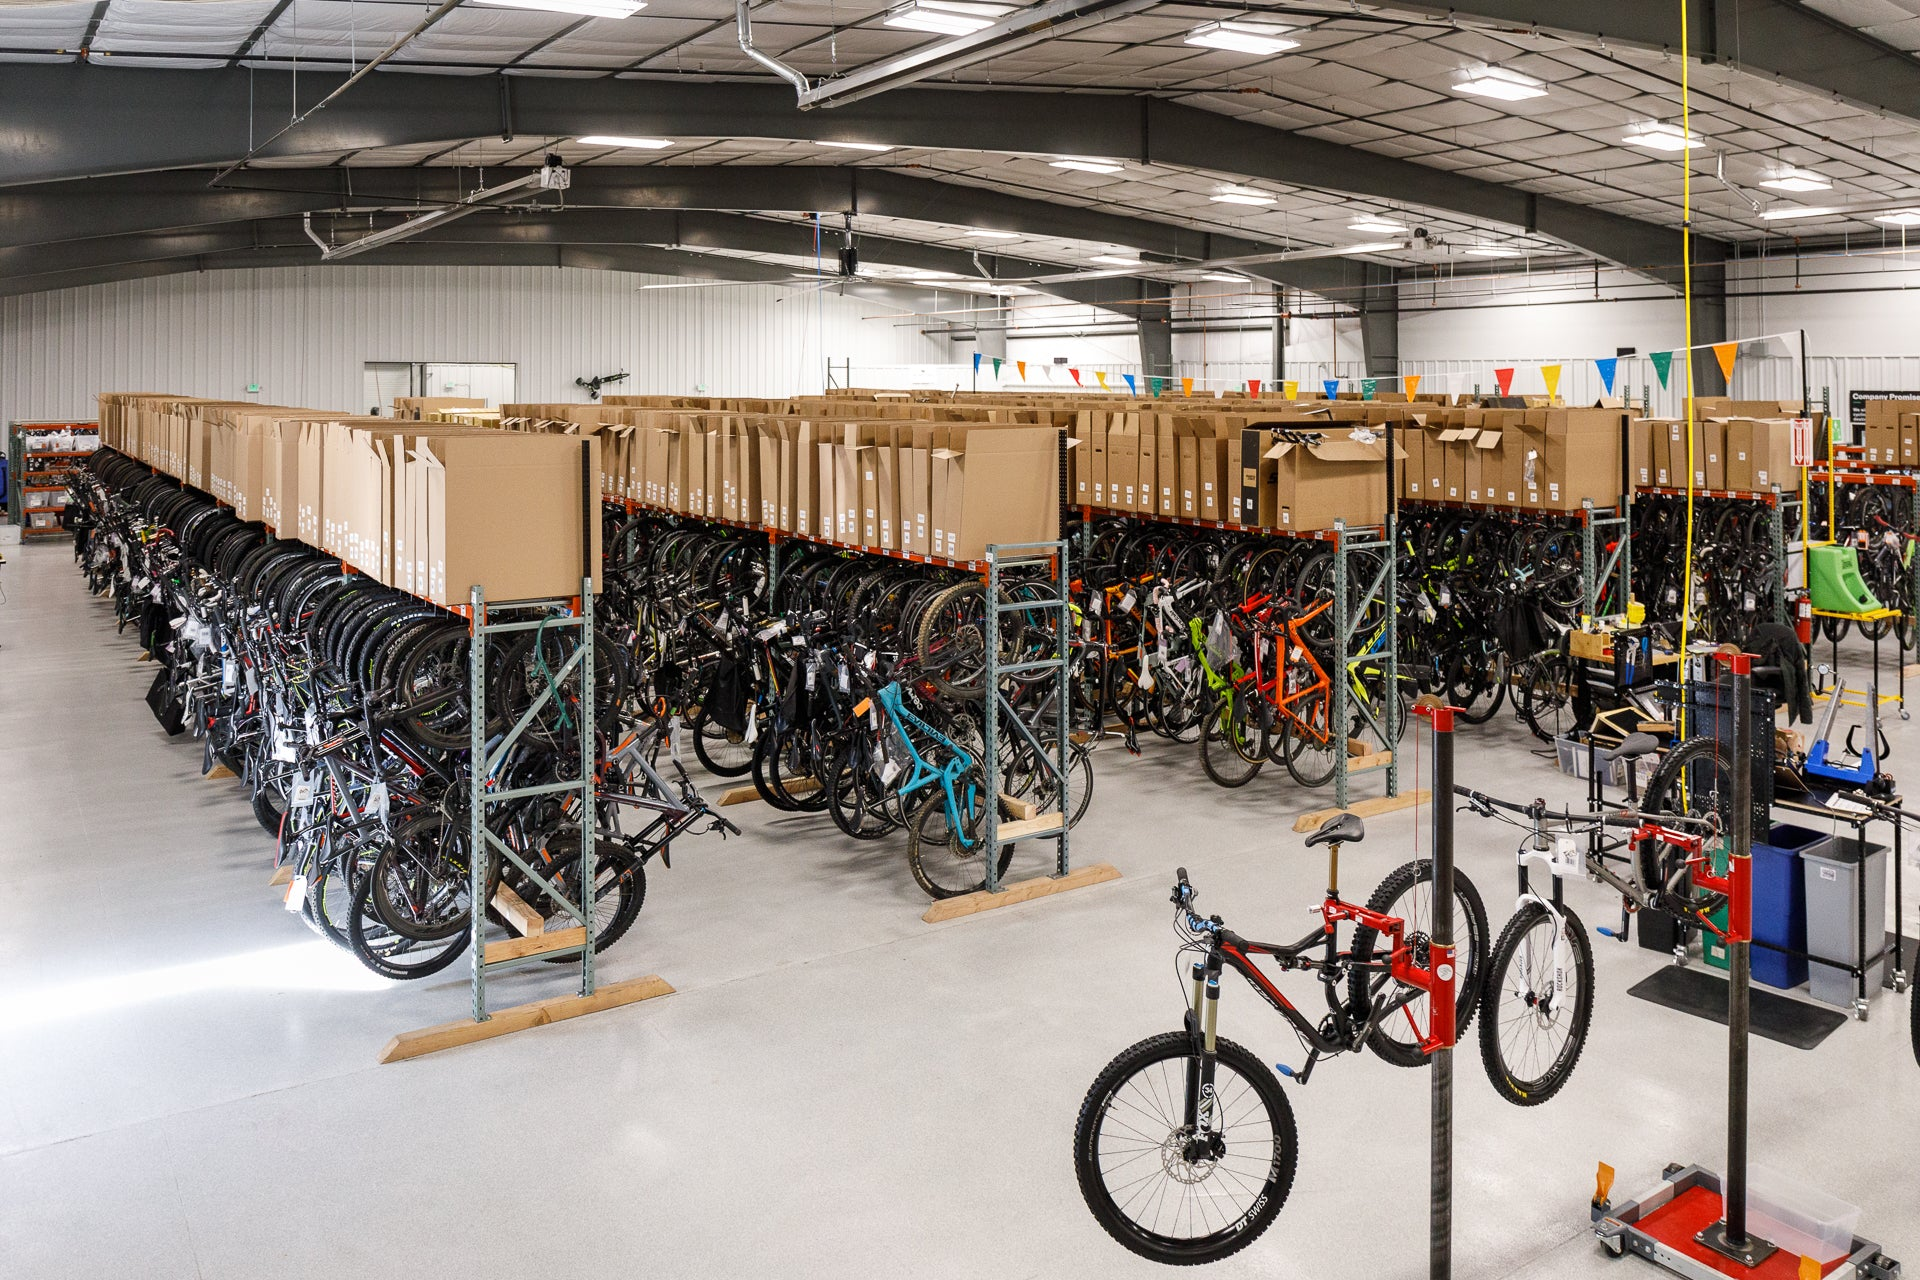 The Pro's Closet used carbon bike selection